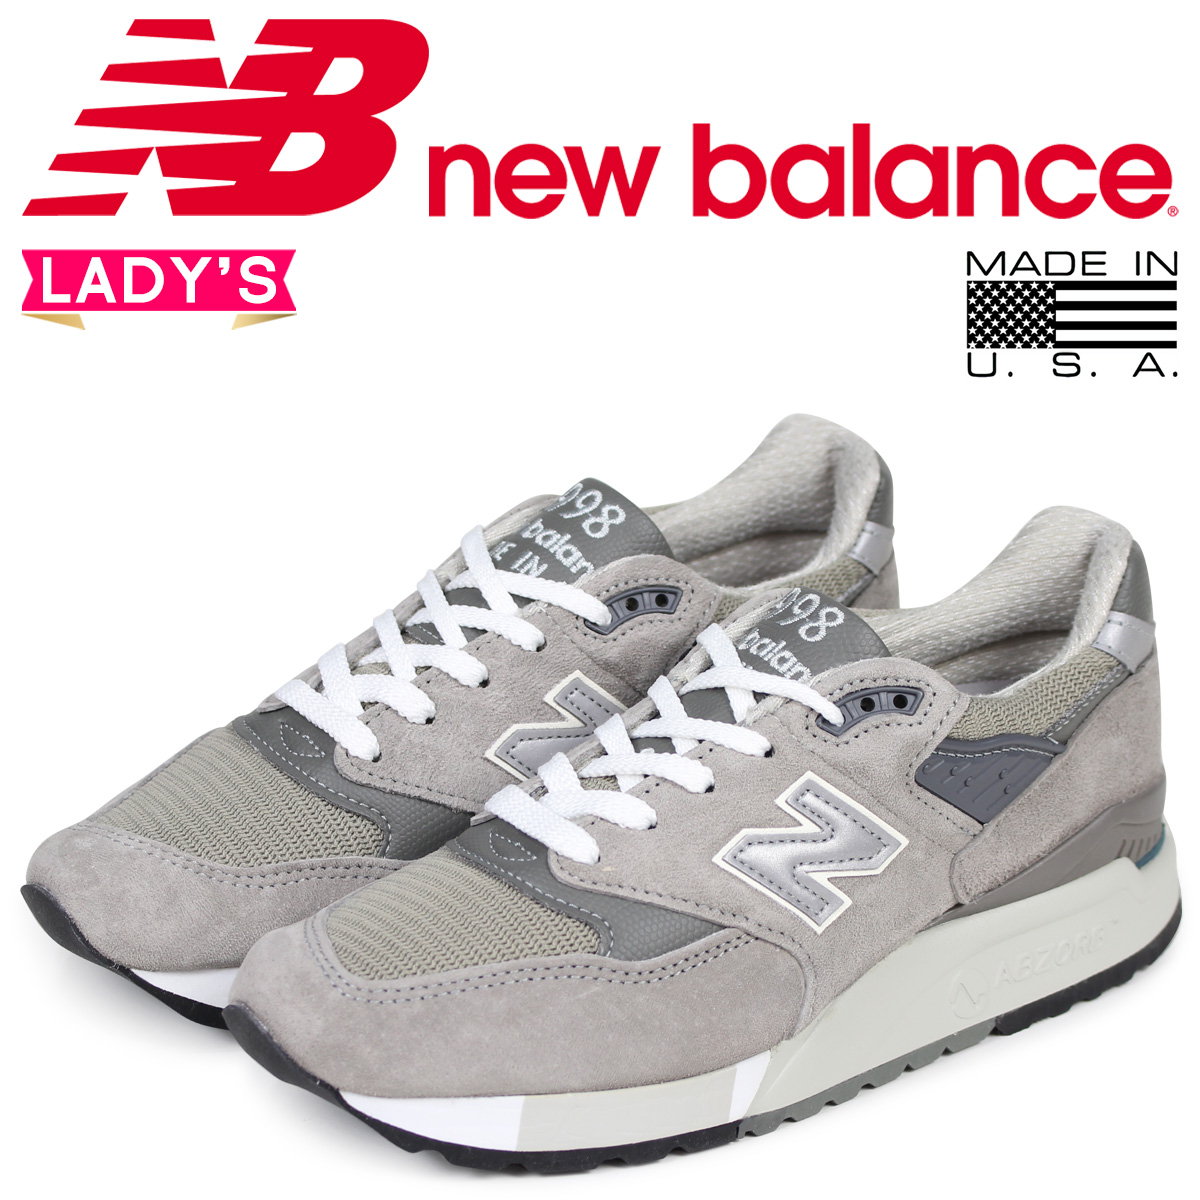 best cheap a0667 c74b0 new balance 998 Lady's New Balance sneakers W998G B Wise MADE IN USA gray